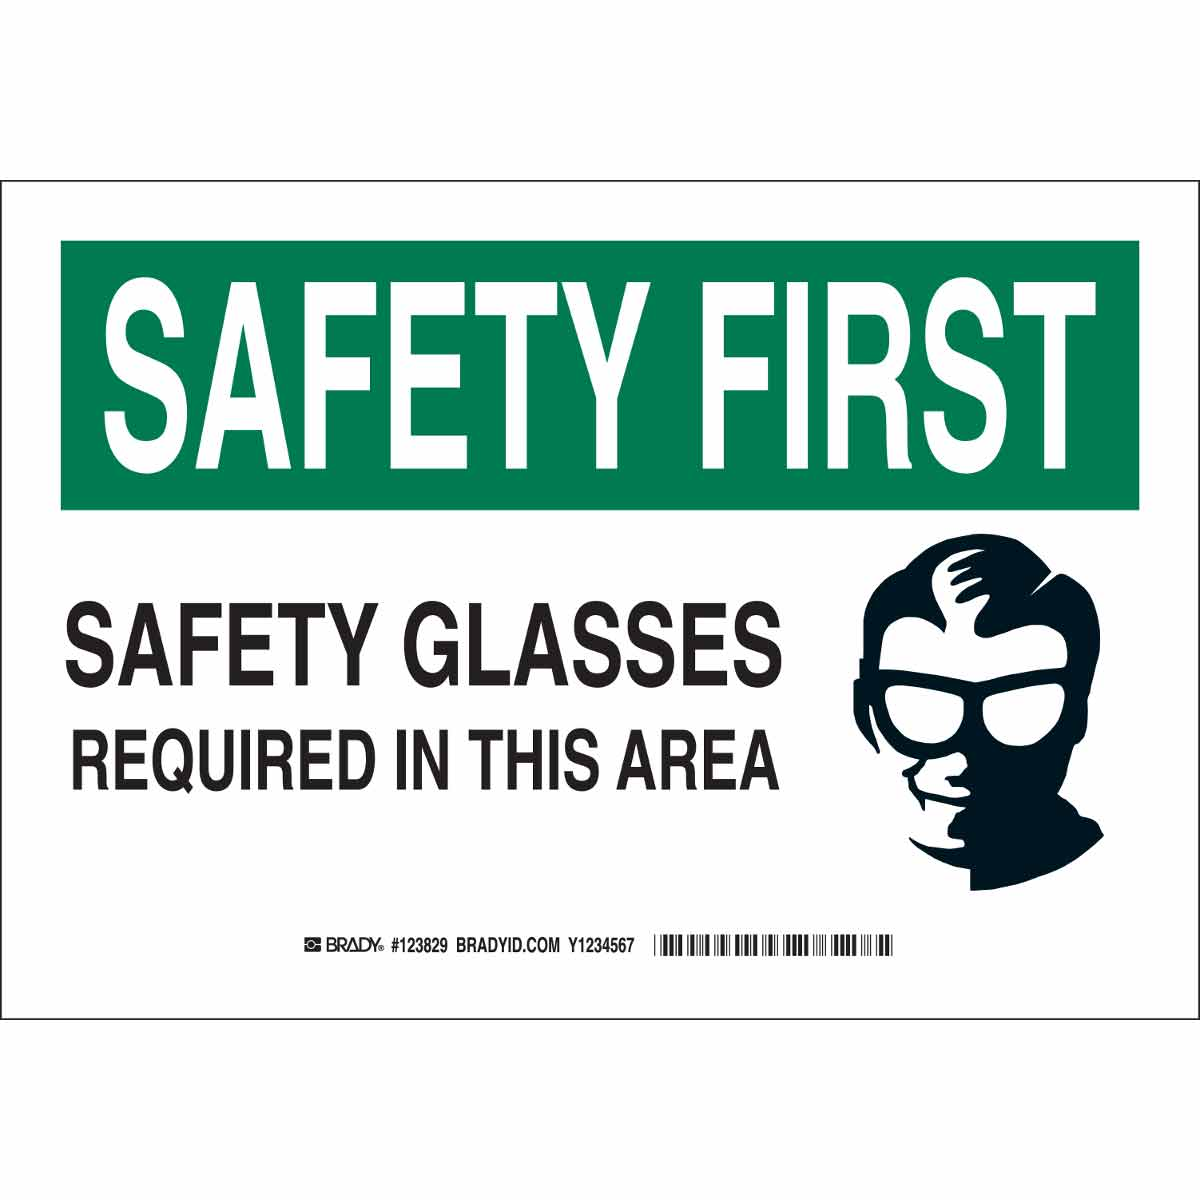 Brady® 123828 Rectangular Personal Protection Sign, 7 in H x 10 in W, Black/Green on White, B-401 Polystyrene, Corner Holes Mount